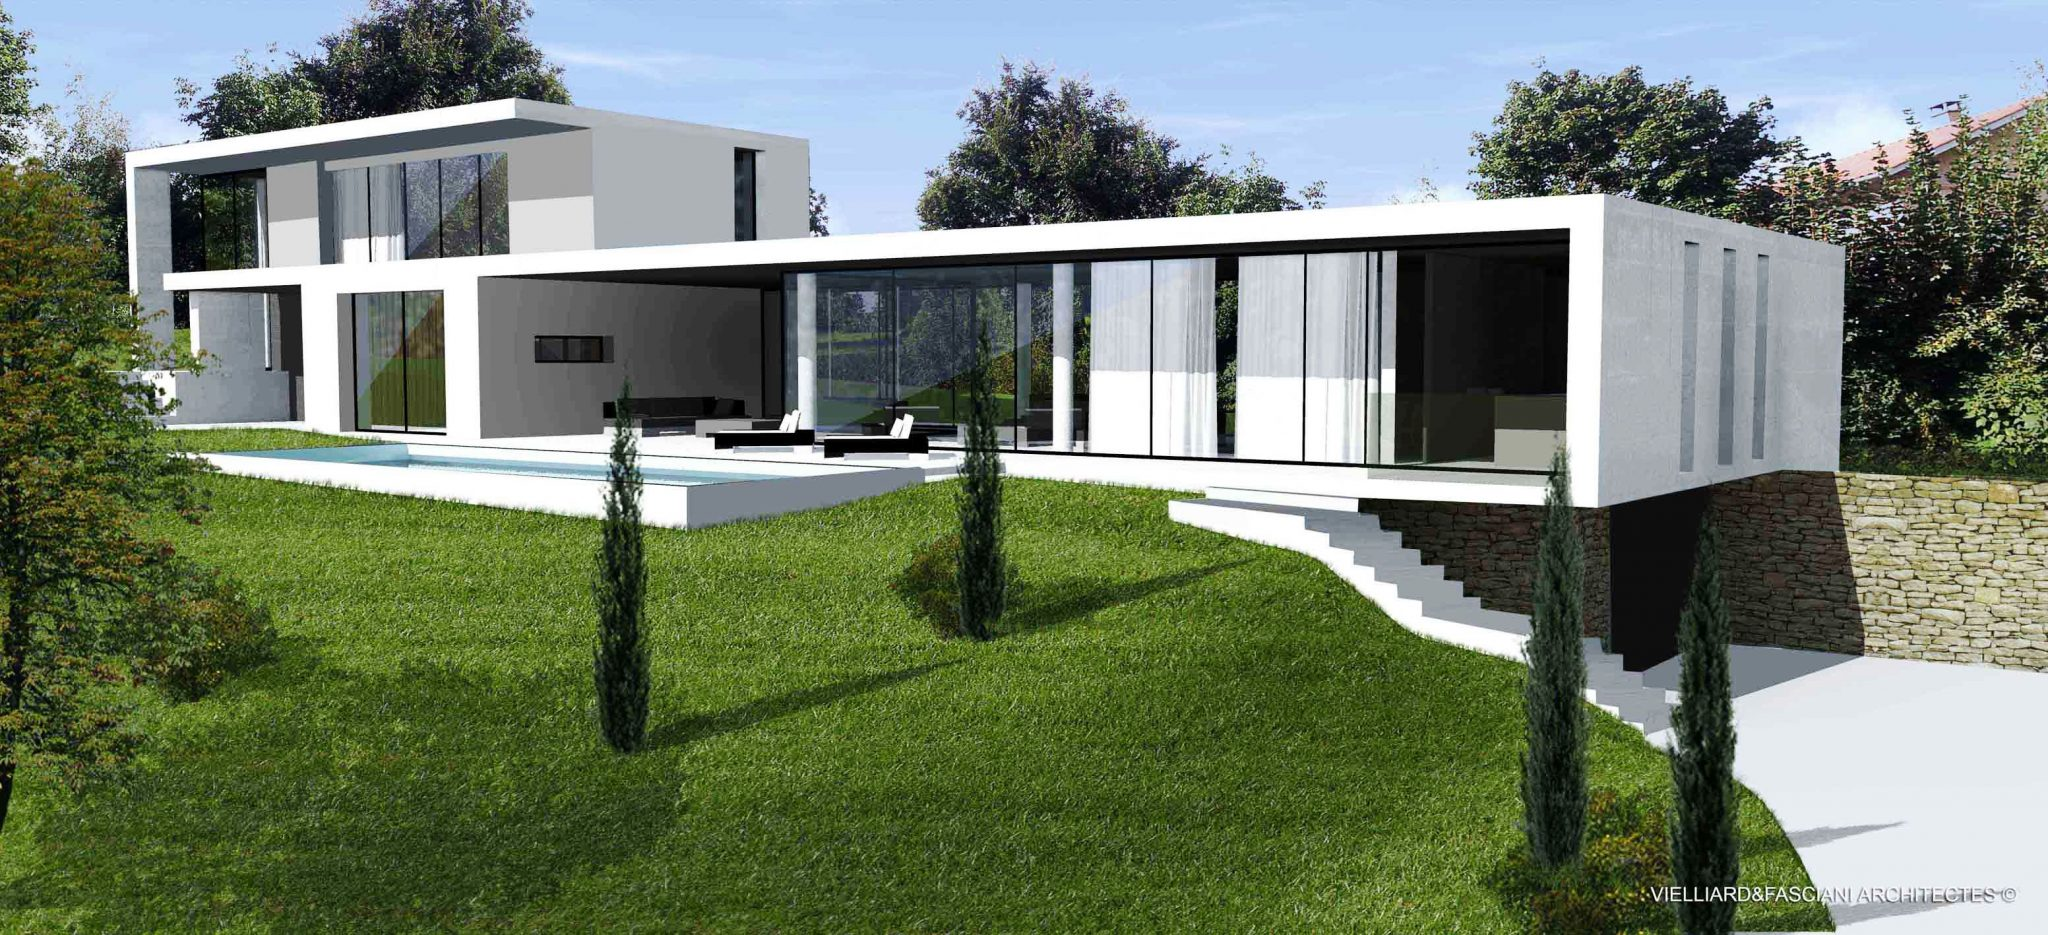 Architecture des villas modernes mc immo for Villas modernes architecture